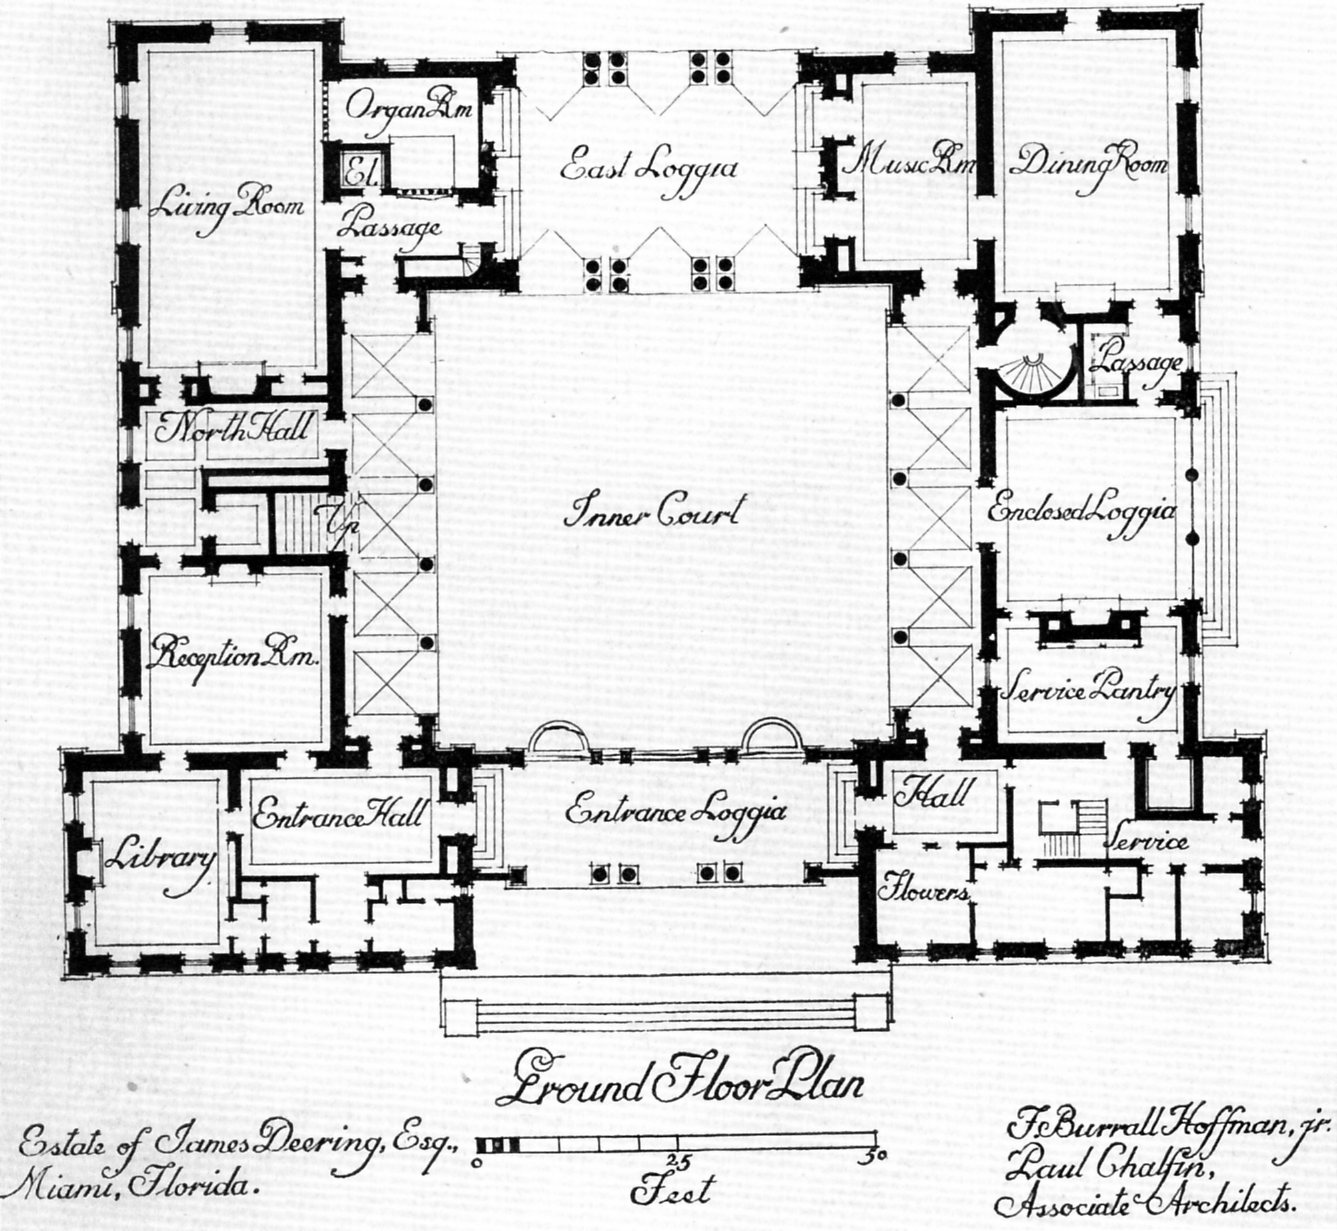 Central courtyard house plans find house plans Buy architectural plans